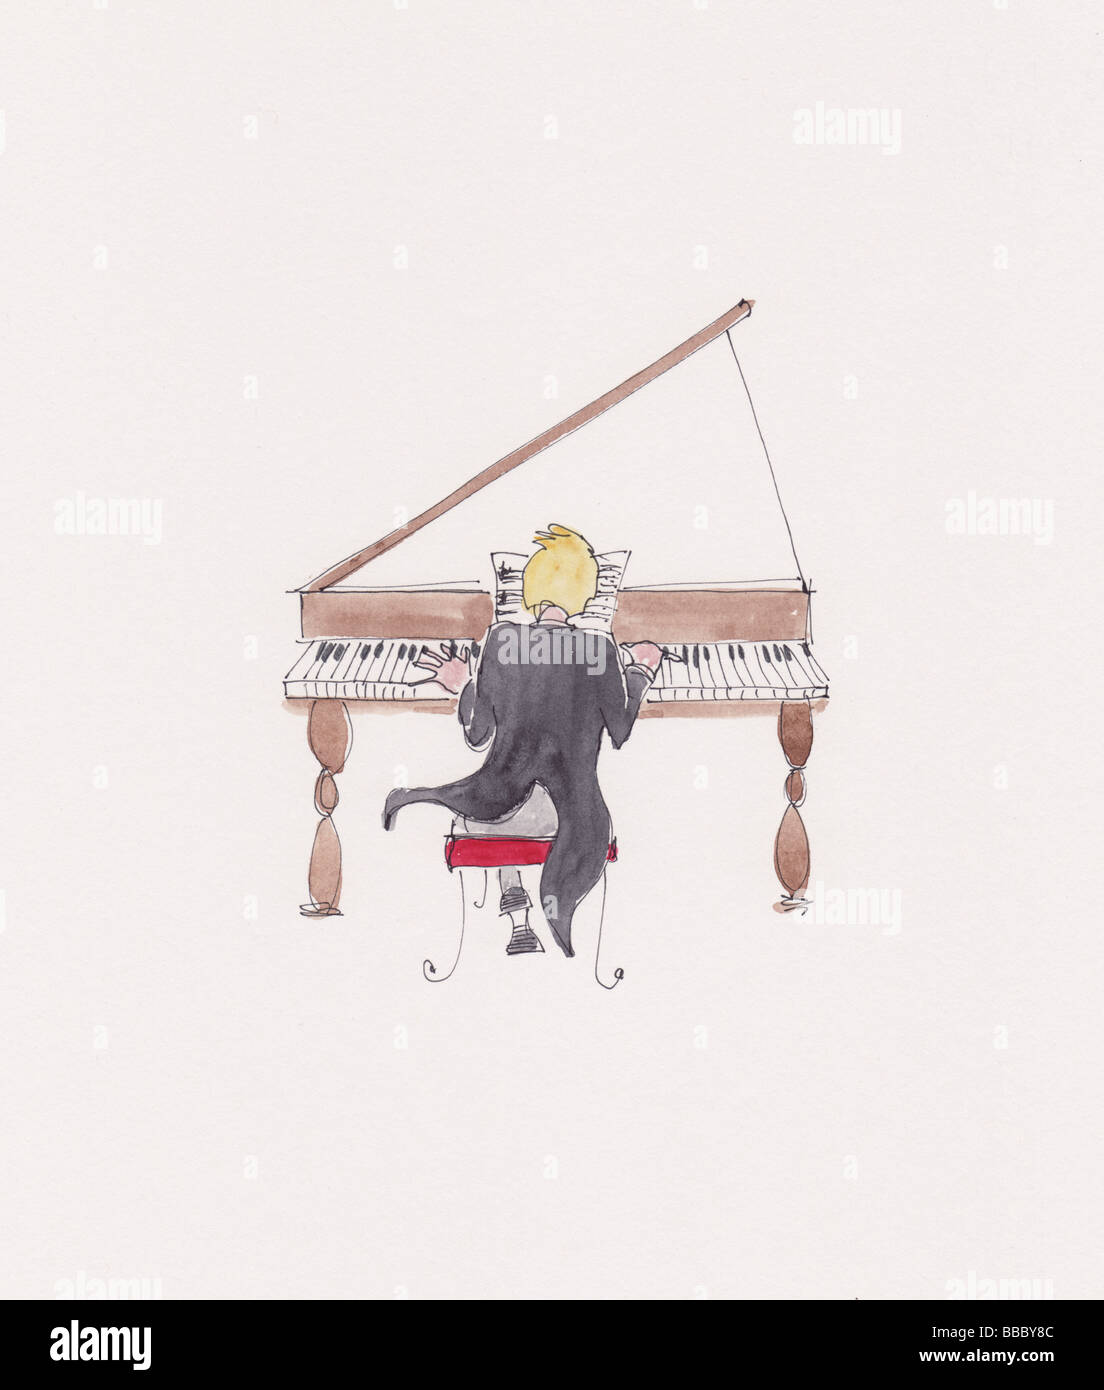 Illustration à l'aquarelle d'un homme jouant un grand piano Photo Stock